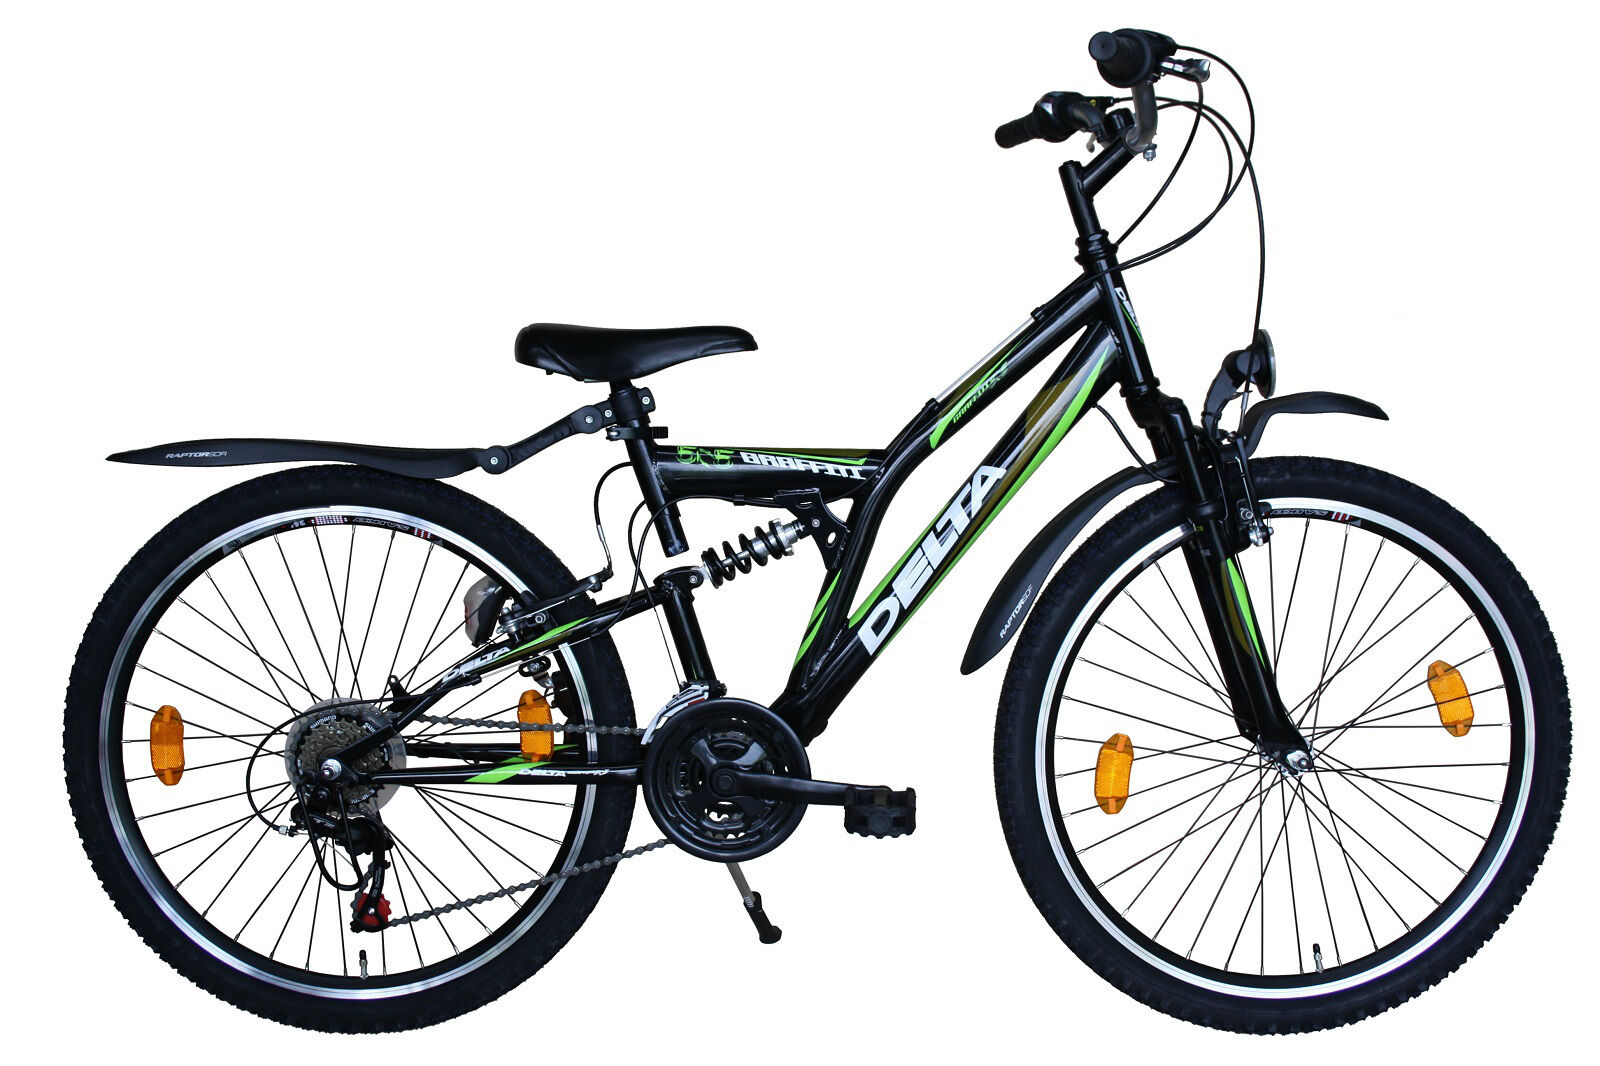 26 zoll mountainbike 18 gang shimano stvzo mit beleuchtung 26 zoll fahrrad mtb eur 174 99. Black Bedroom Furniture Sets. Home Design Ideas